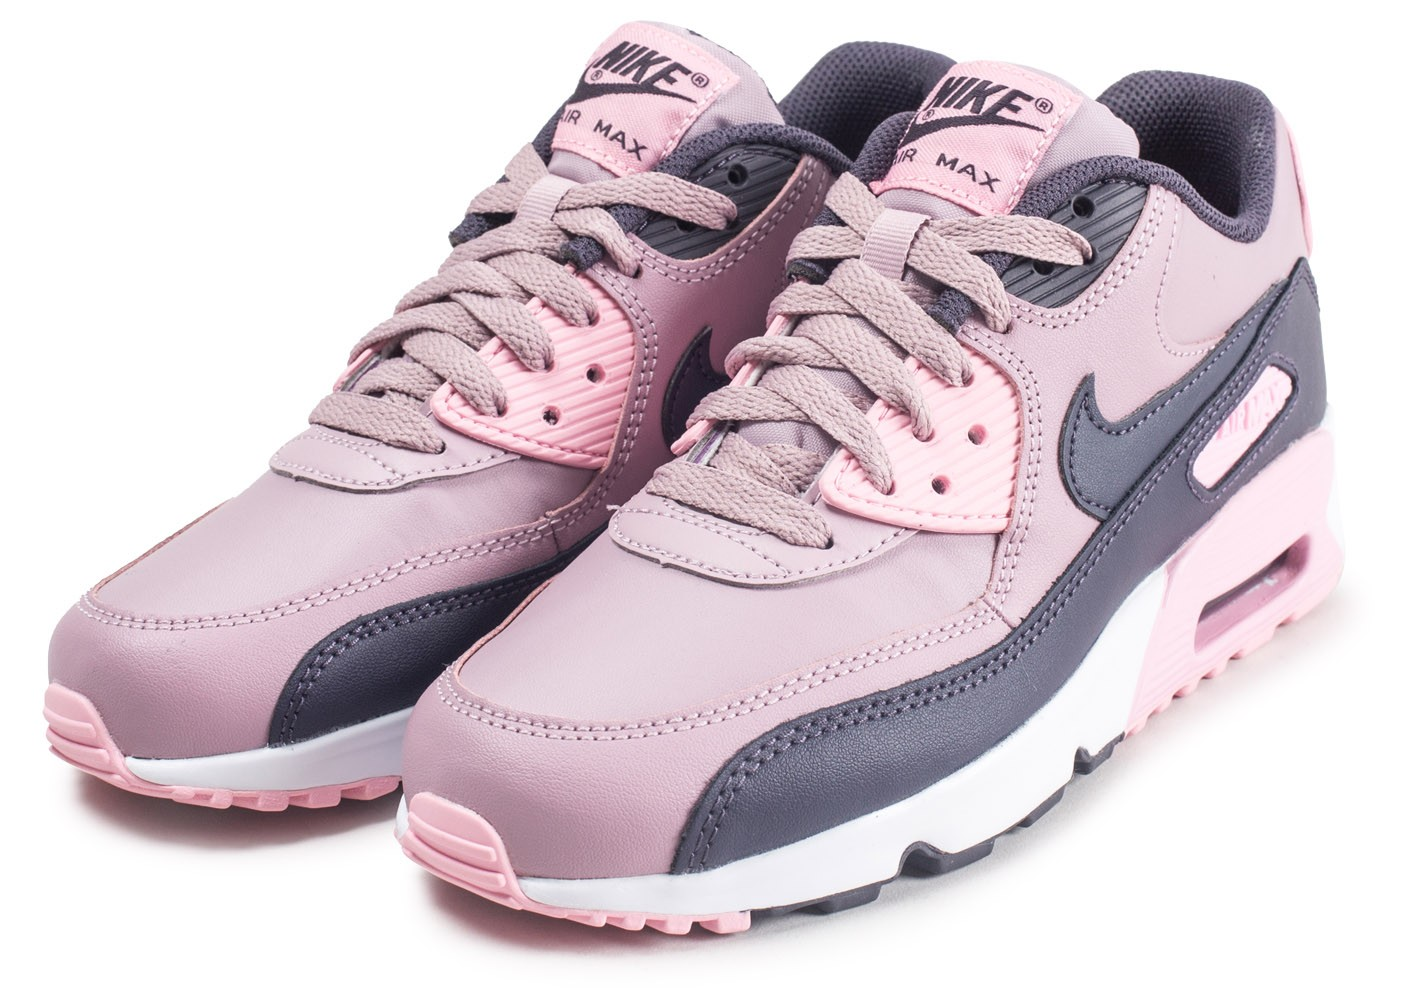 official photos b0dfd f474c ... Chaussures Nike Air Max 90 Leather rose junior vue intérieure ...